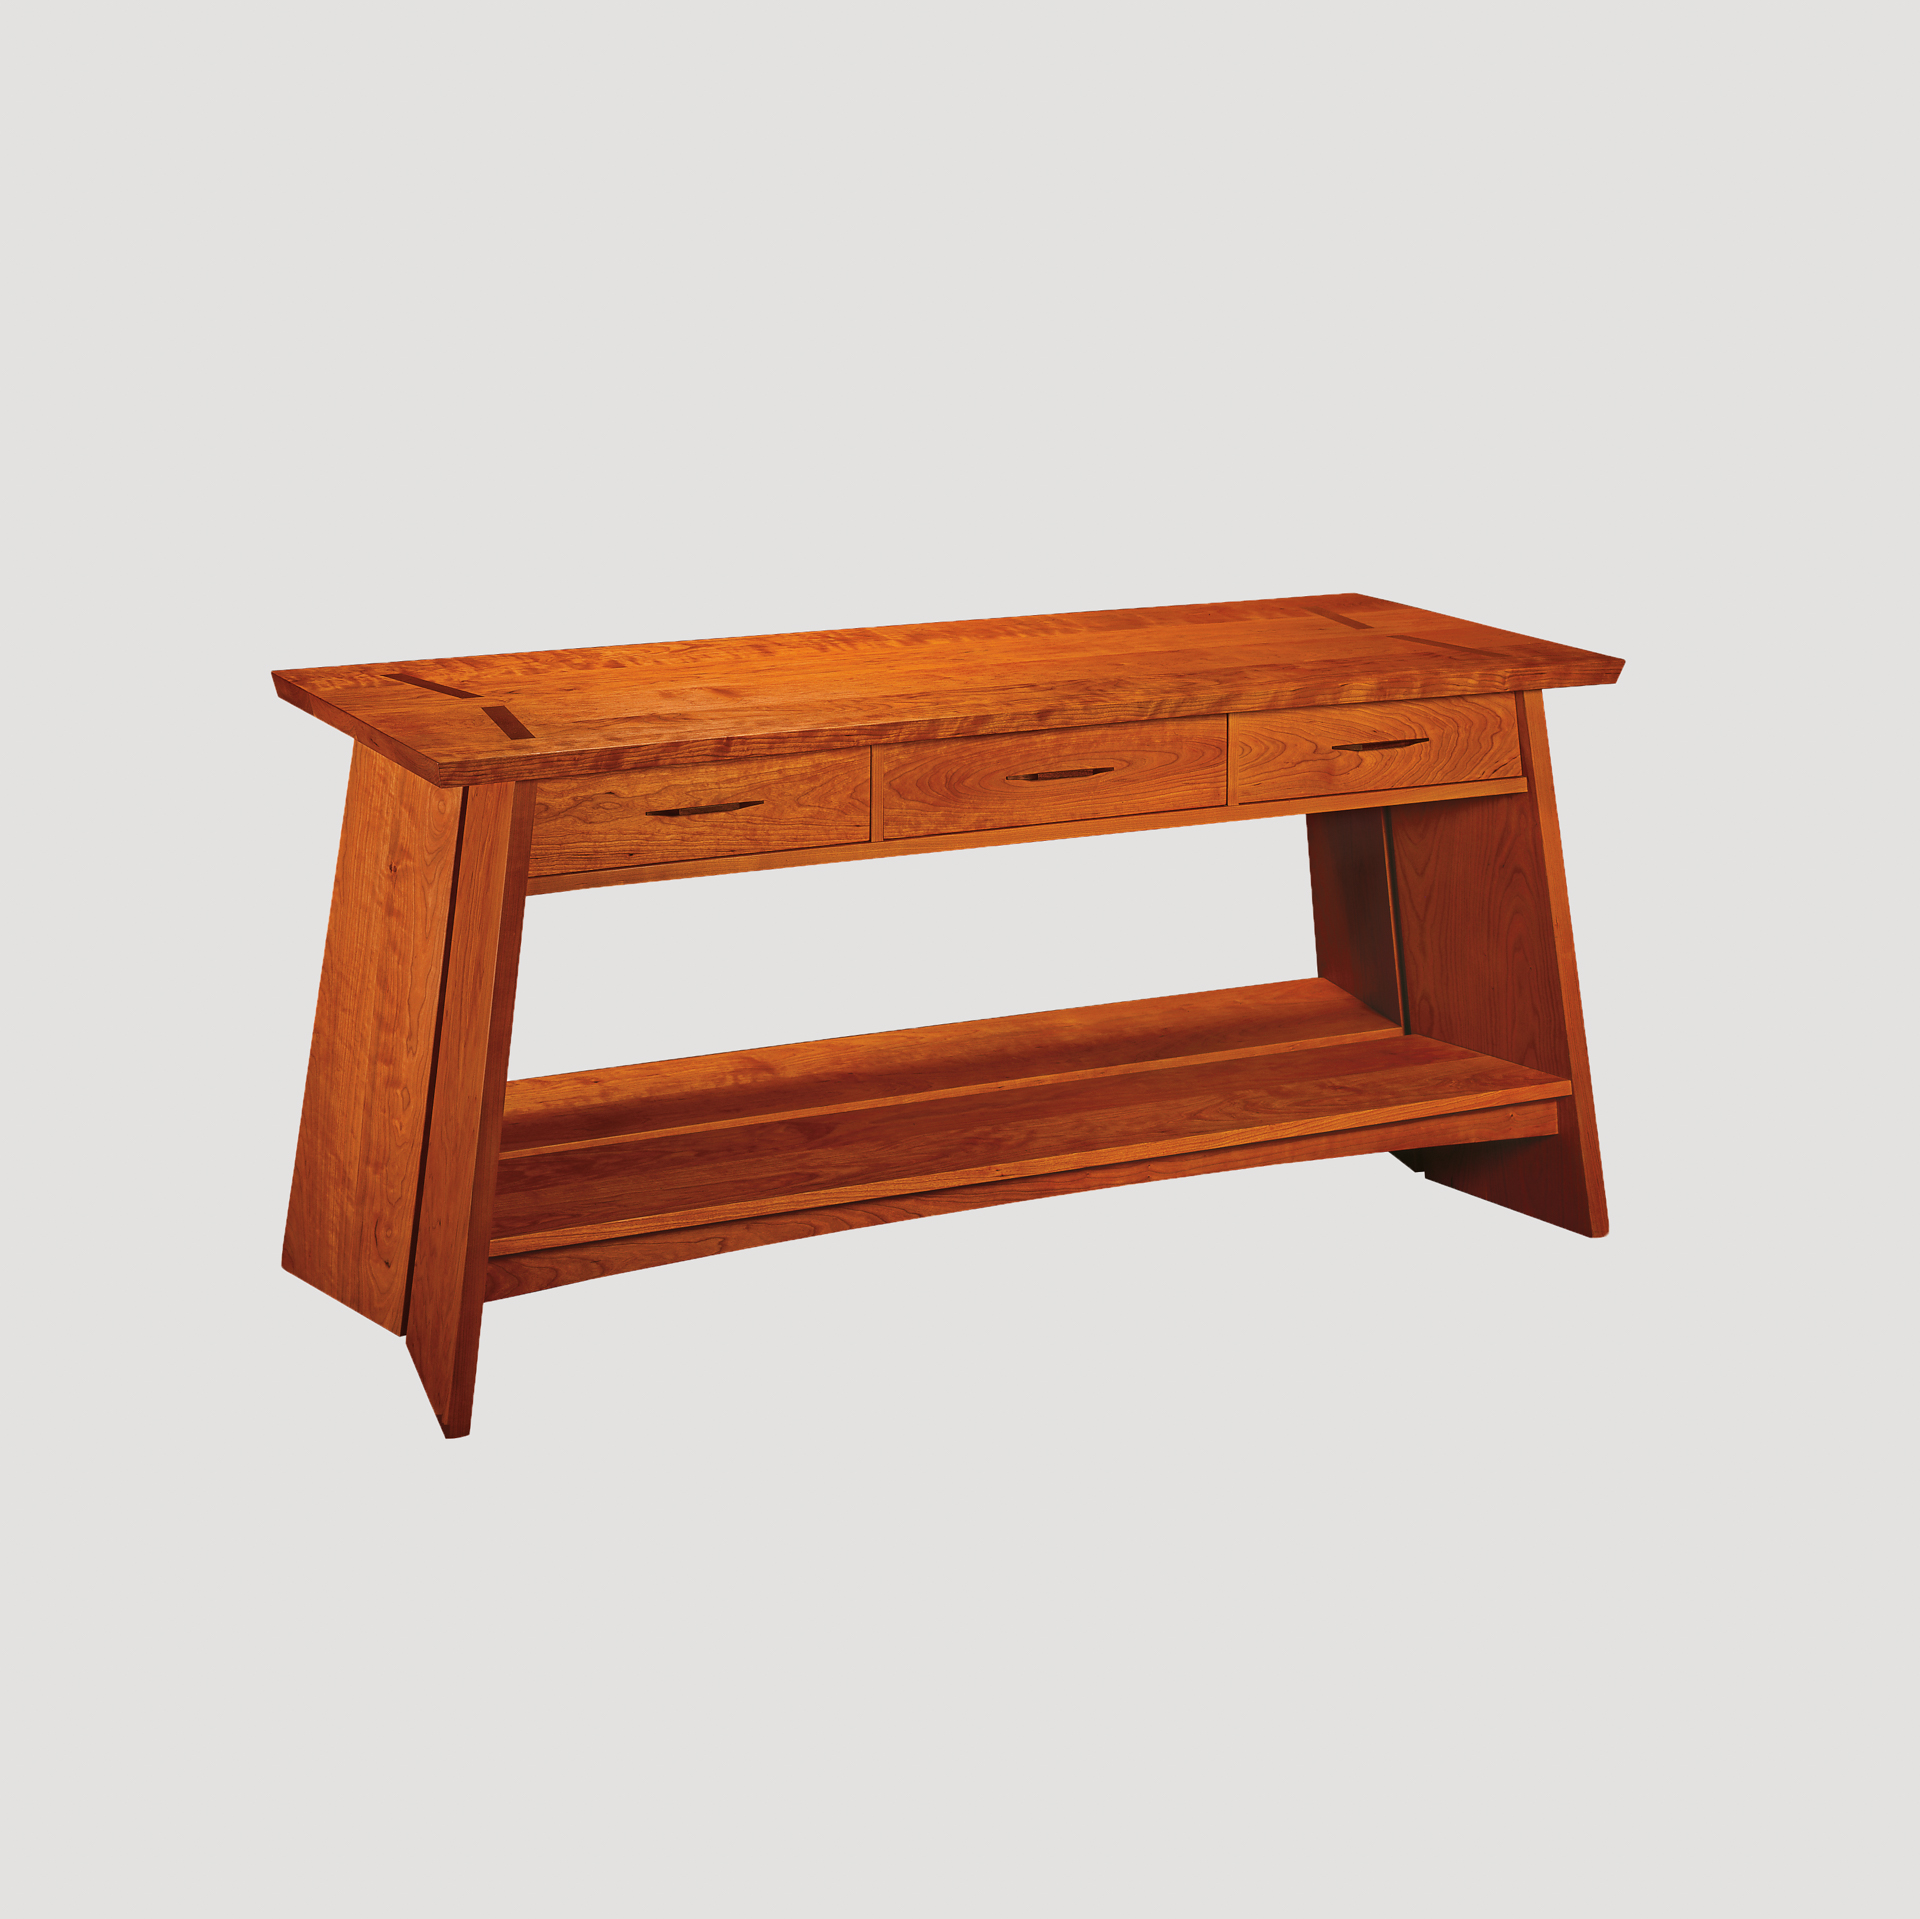 table american bungalow bck lr americanbungalow diningcase cherry thos sideboard moser product